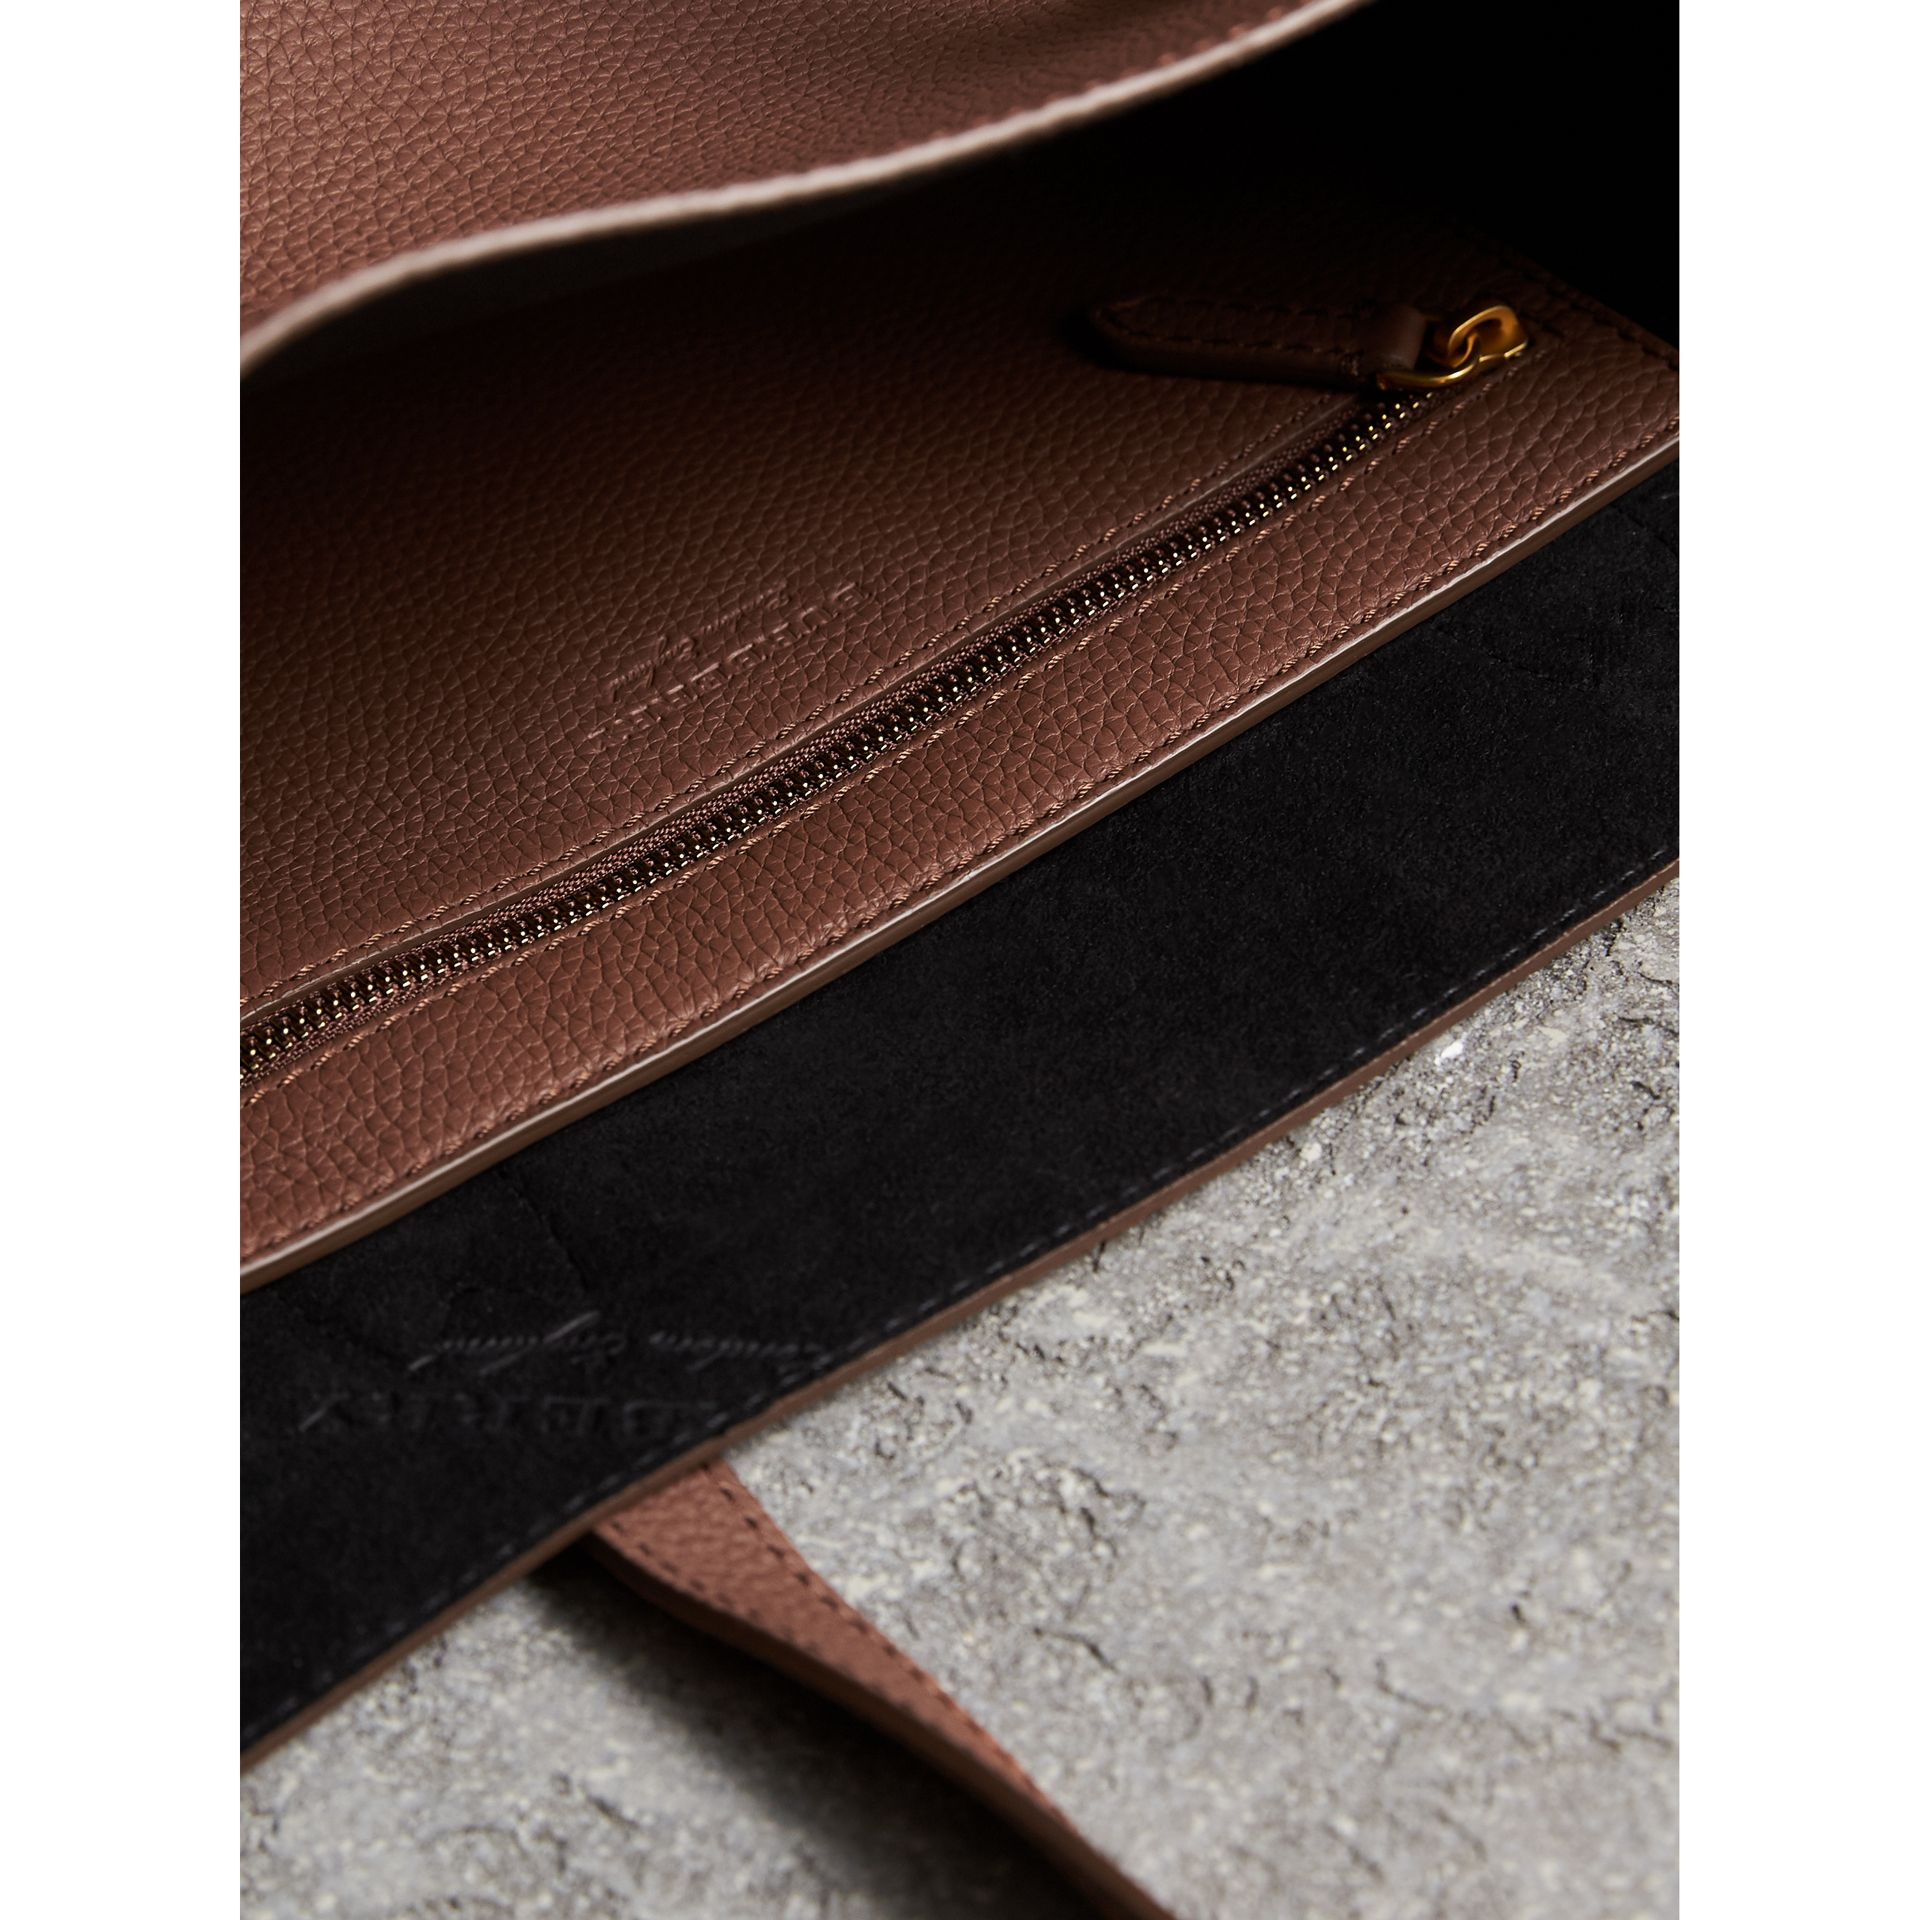 Medium Embossed Leather Tote in Chestnut Brown - Women | Burberry - gallery image 5